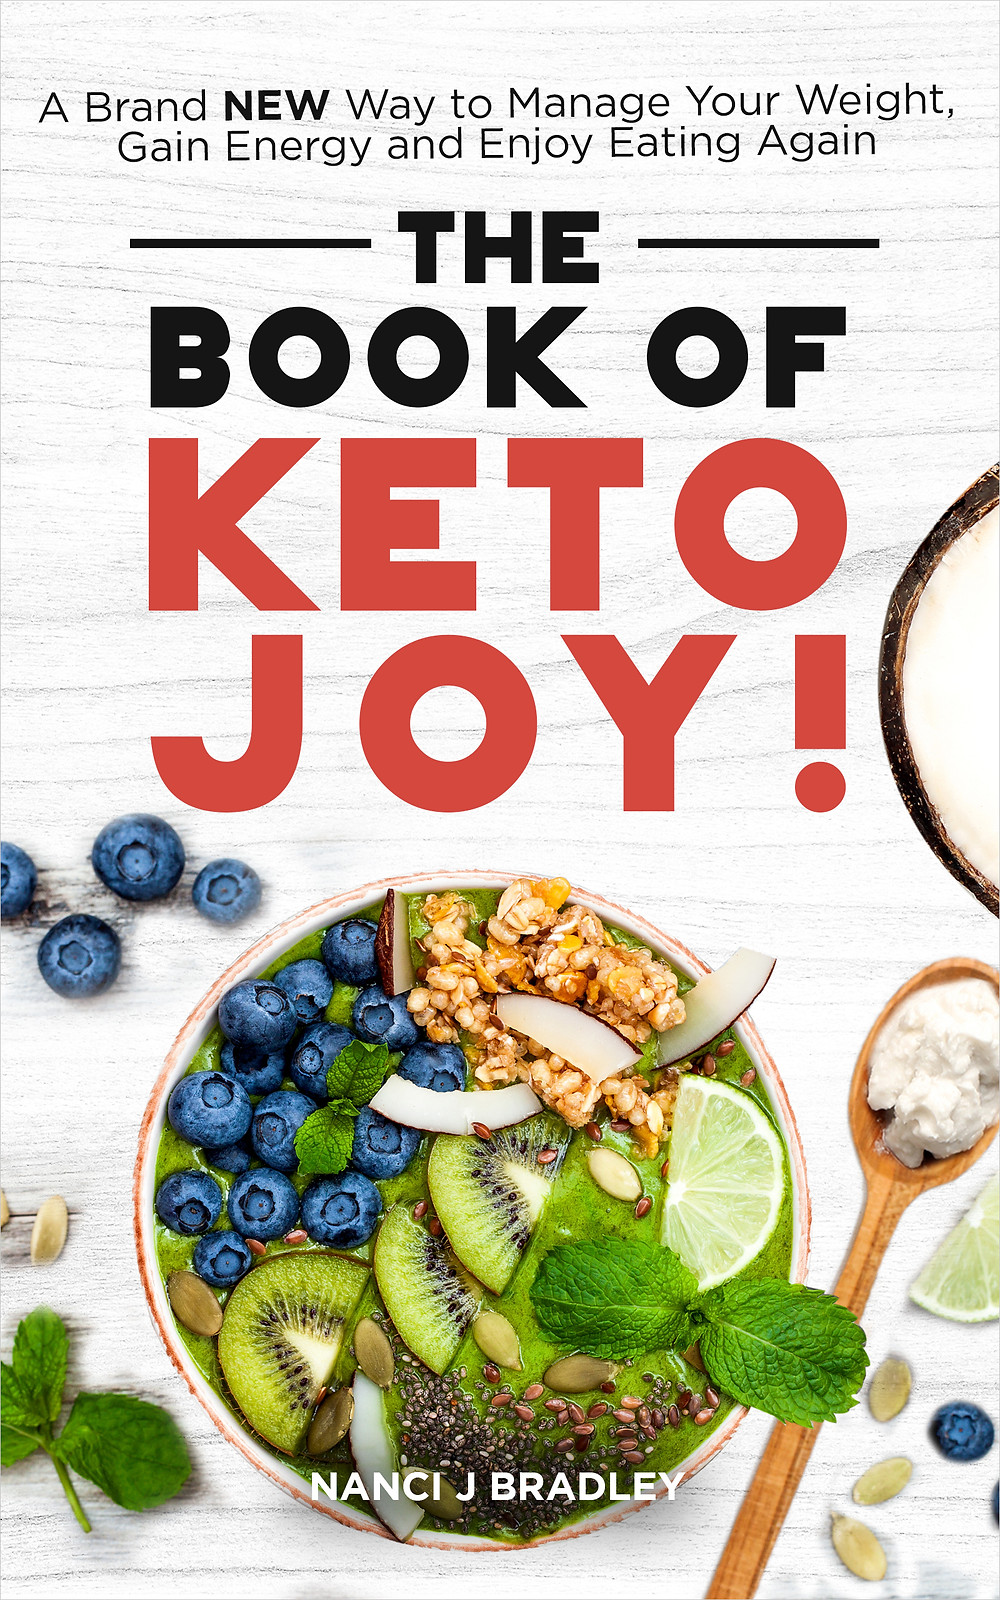 ketogenic, weight loss, energy, low carb